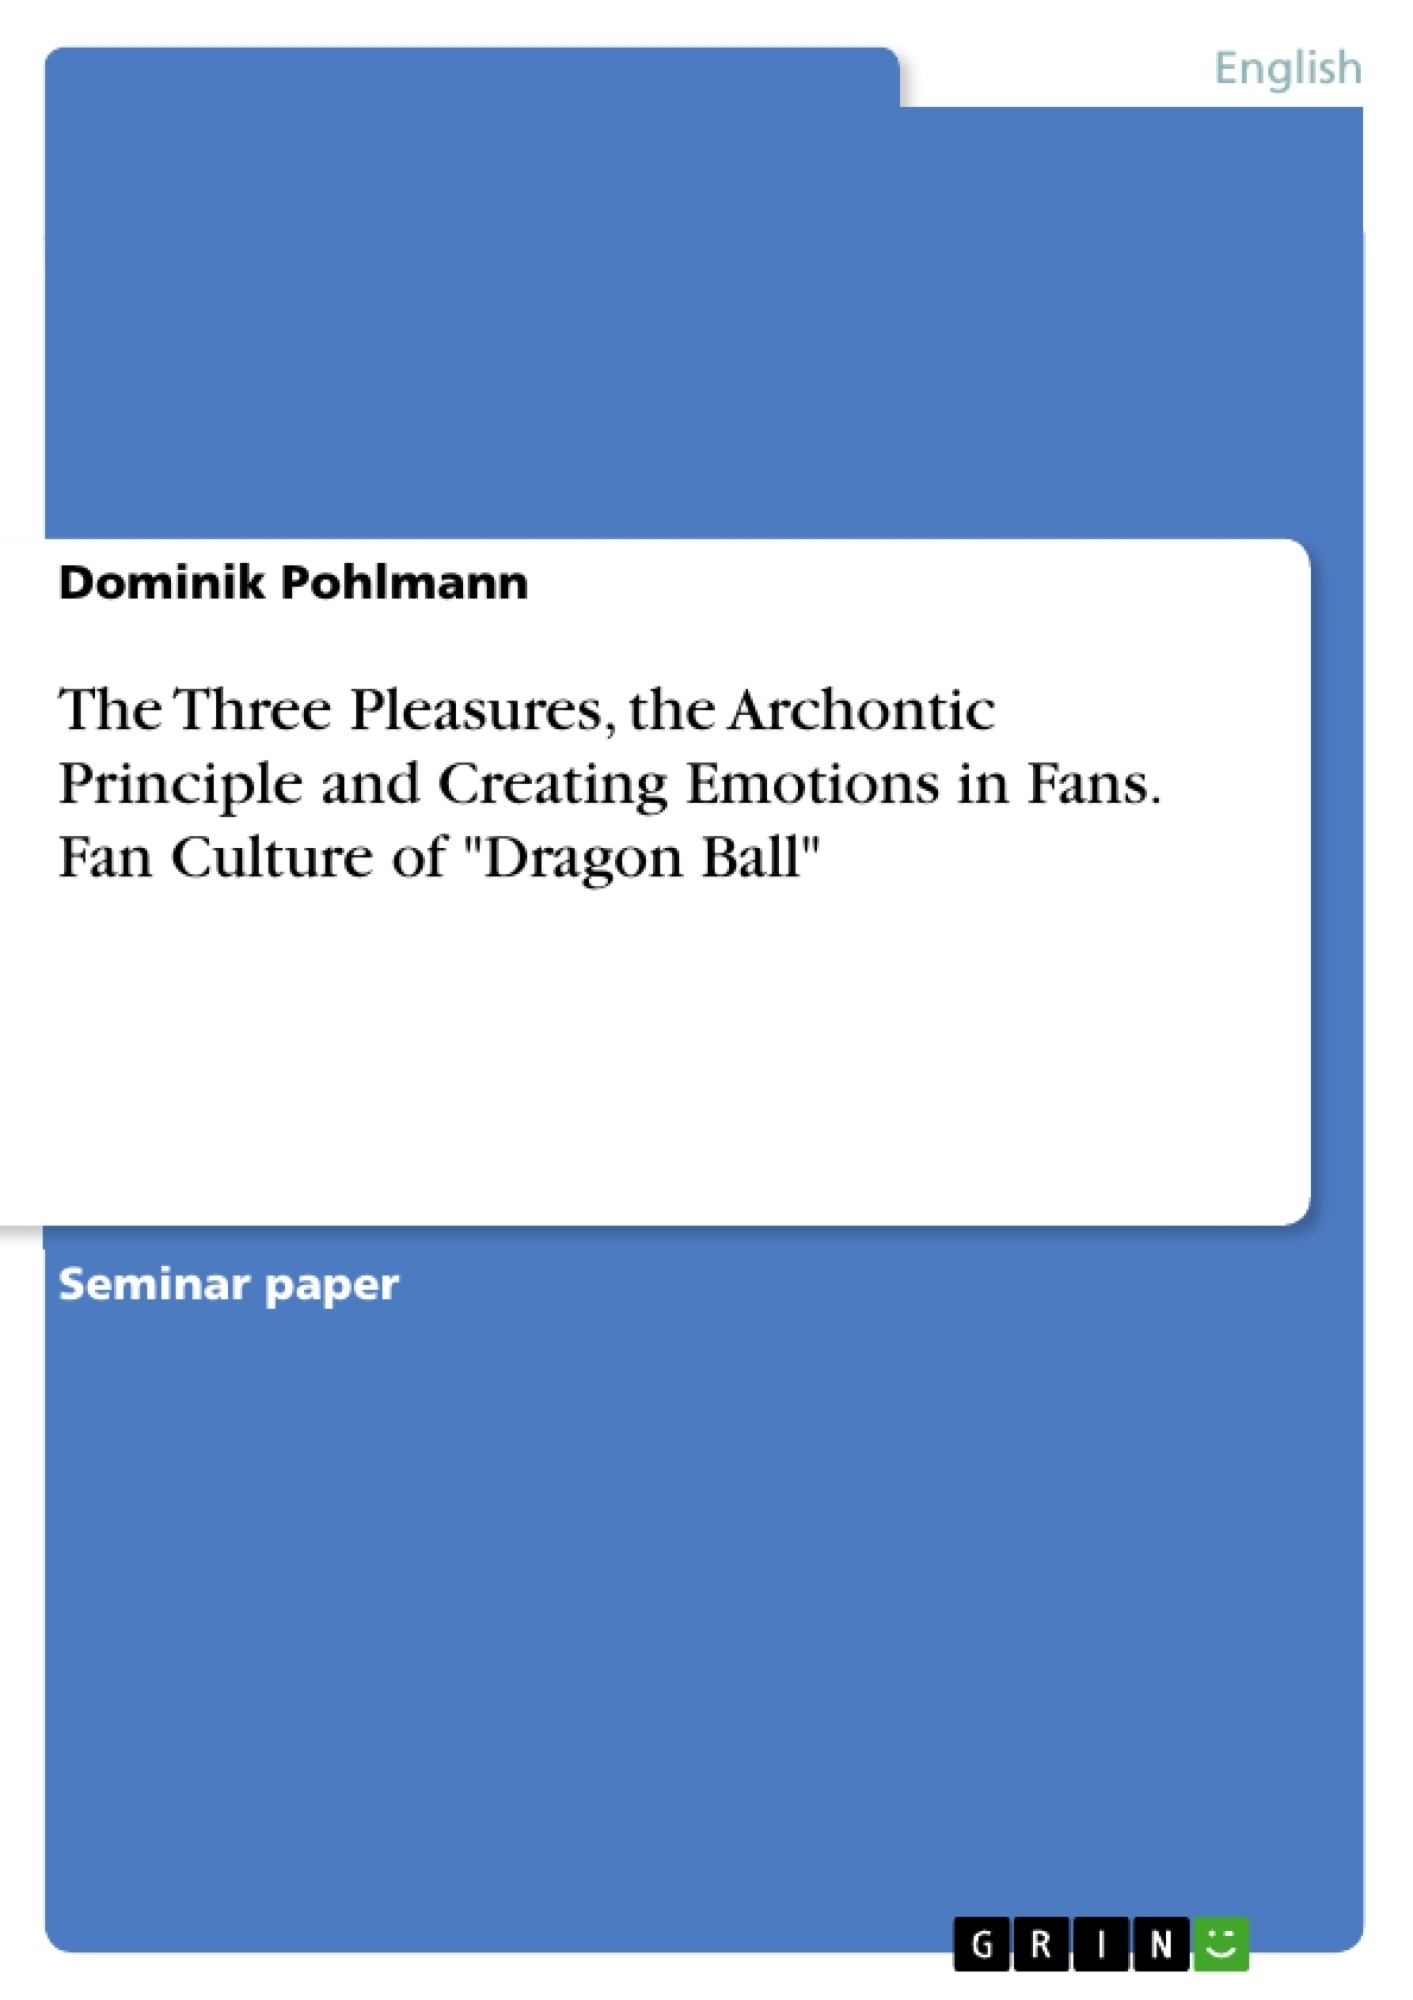 """Title: The Three Pleasures, the Archontic Principle and Creating Emotions in Fans. Fan Culture of """"Dragon Ball"""""""